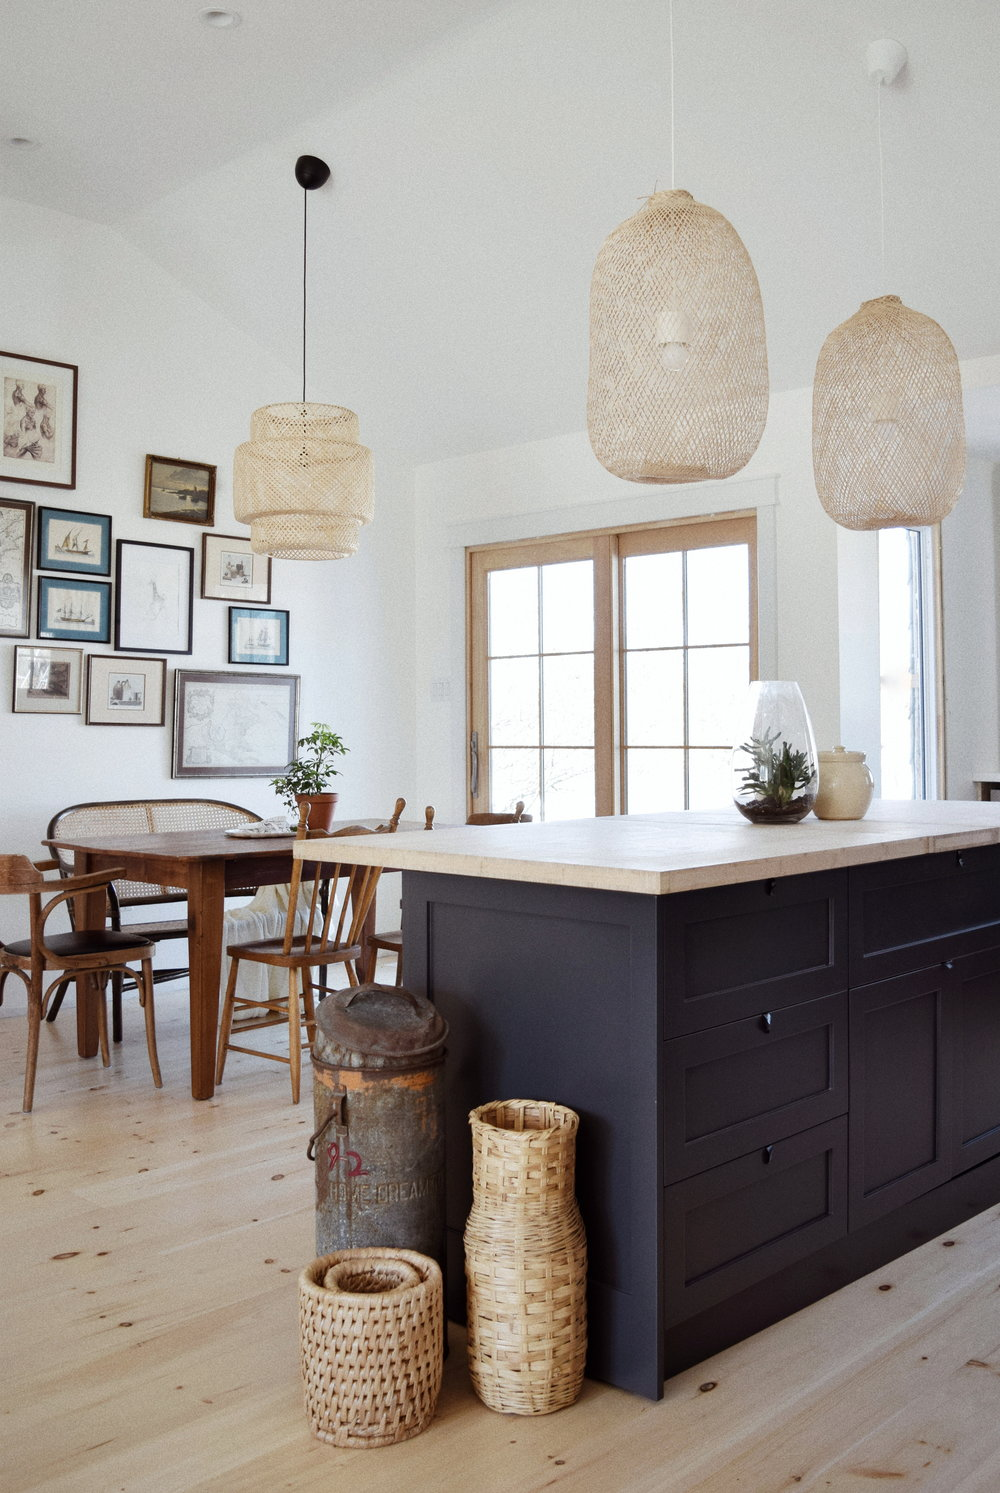 ilaria fatone - today's crush #1 - a rustic style kitchen - cuisine en style rustique